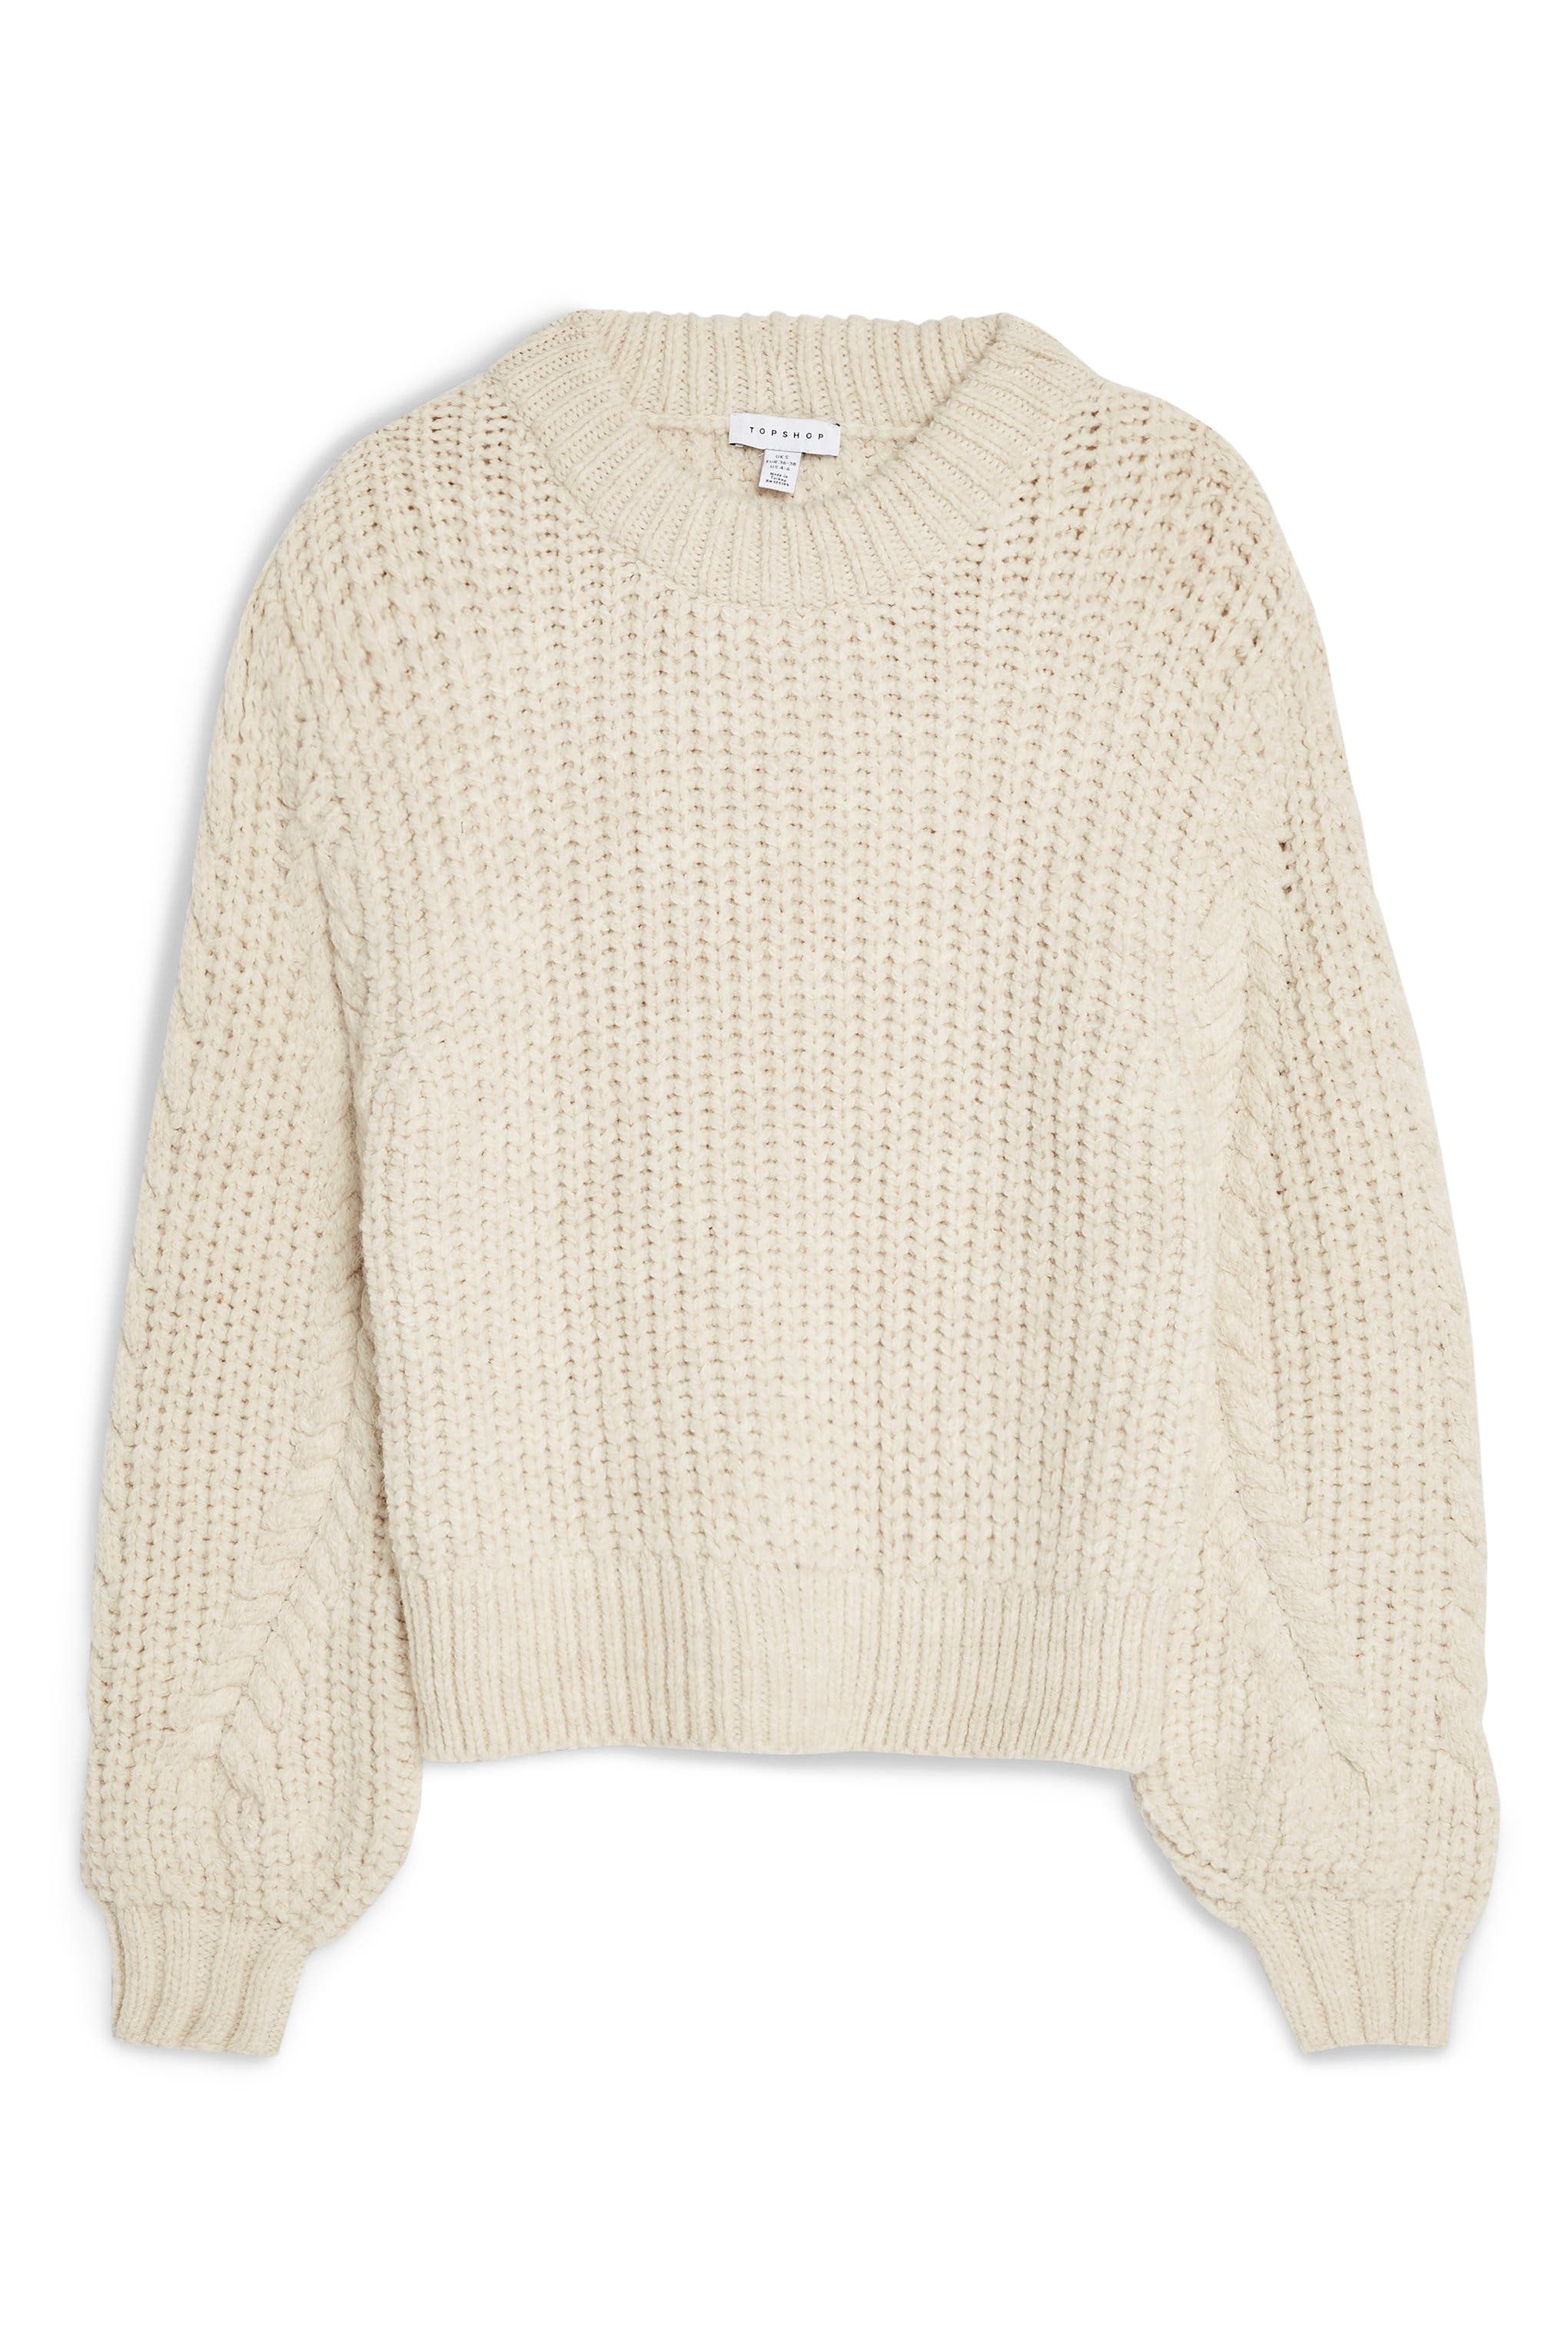 Bishop Sleeve Cable Knit Sweater,                             Alternate thumbnail 4, color,                             OATMEAL